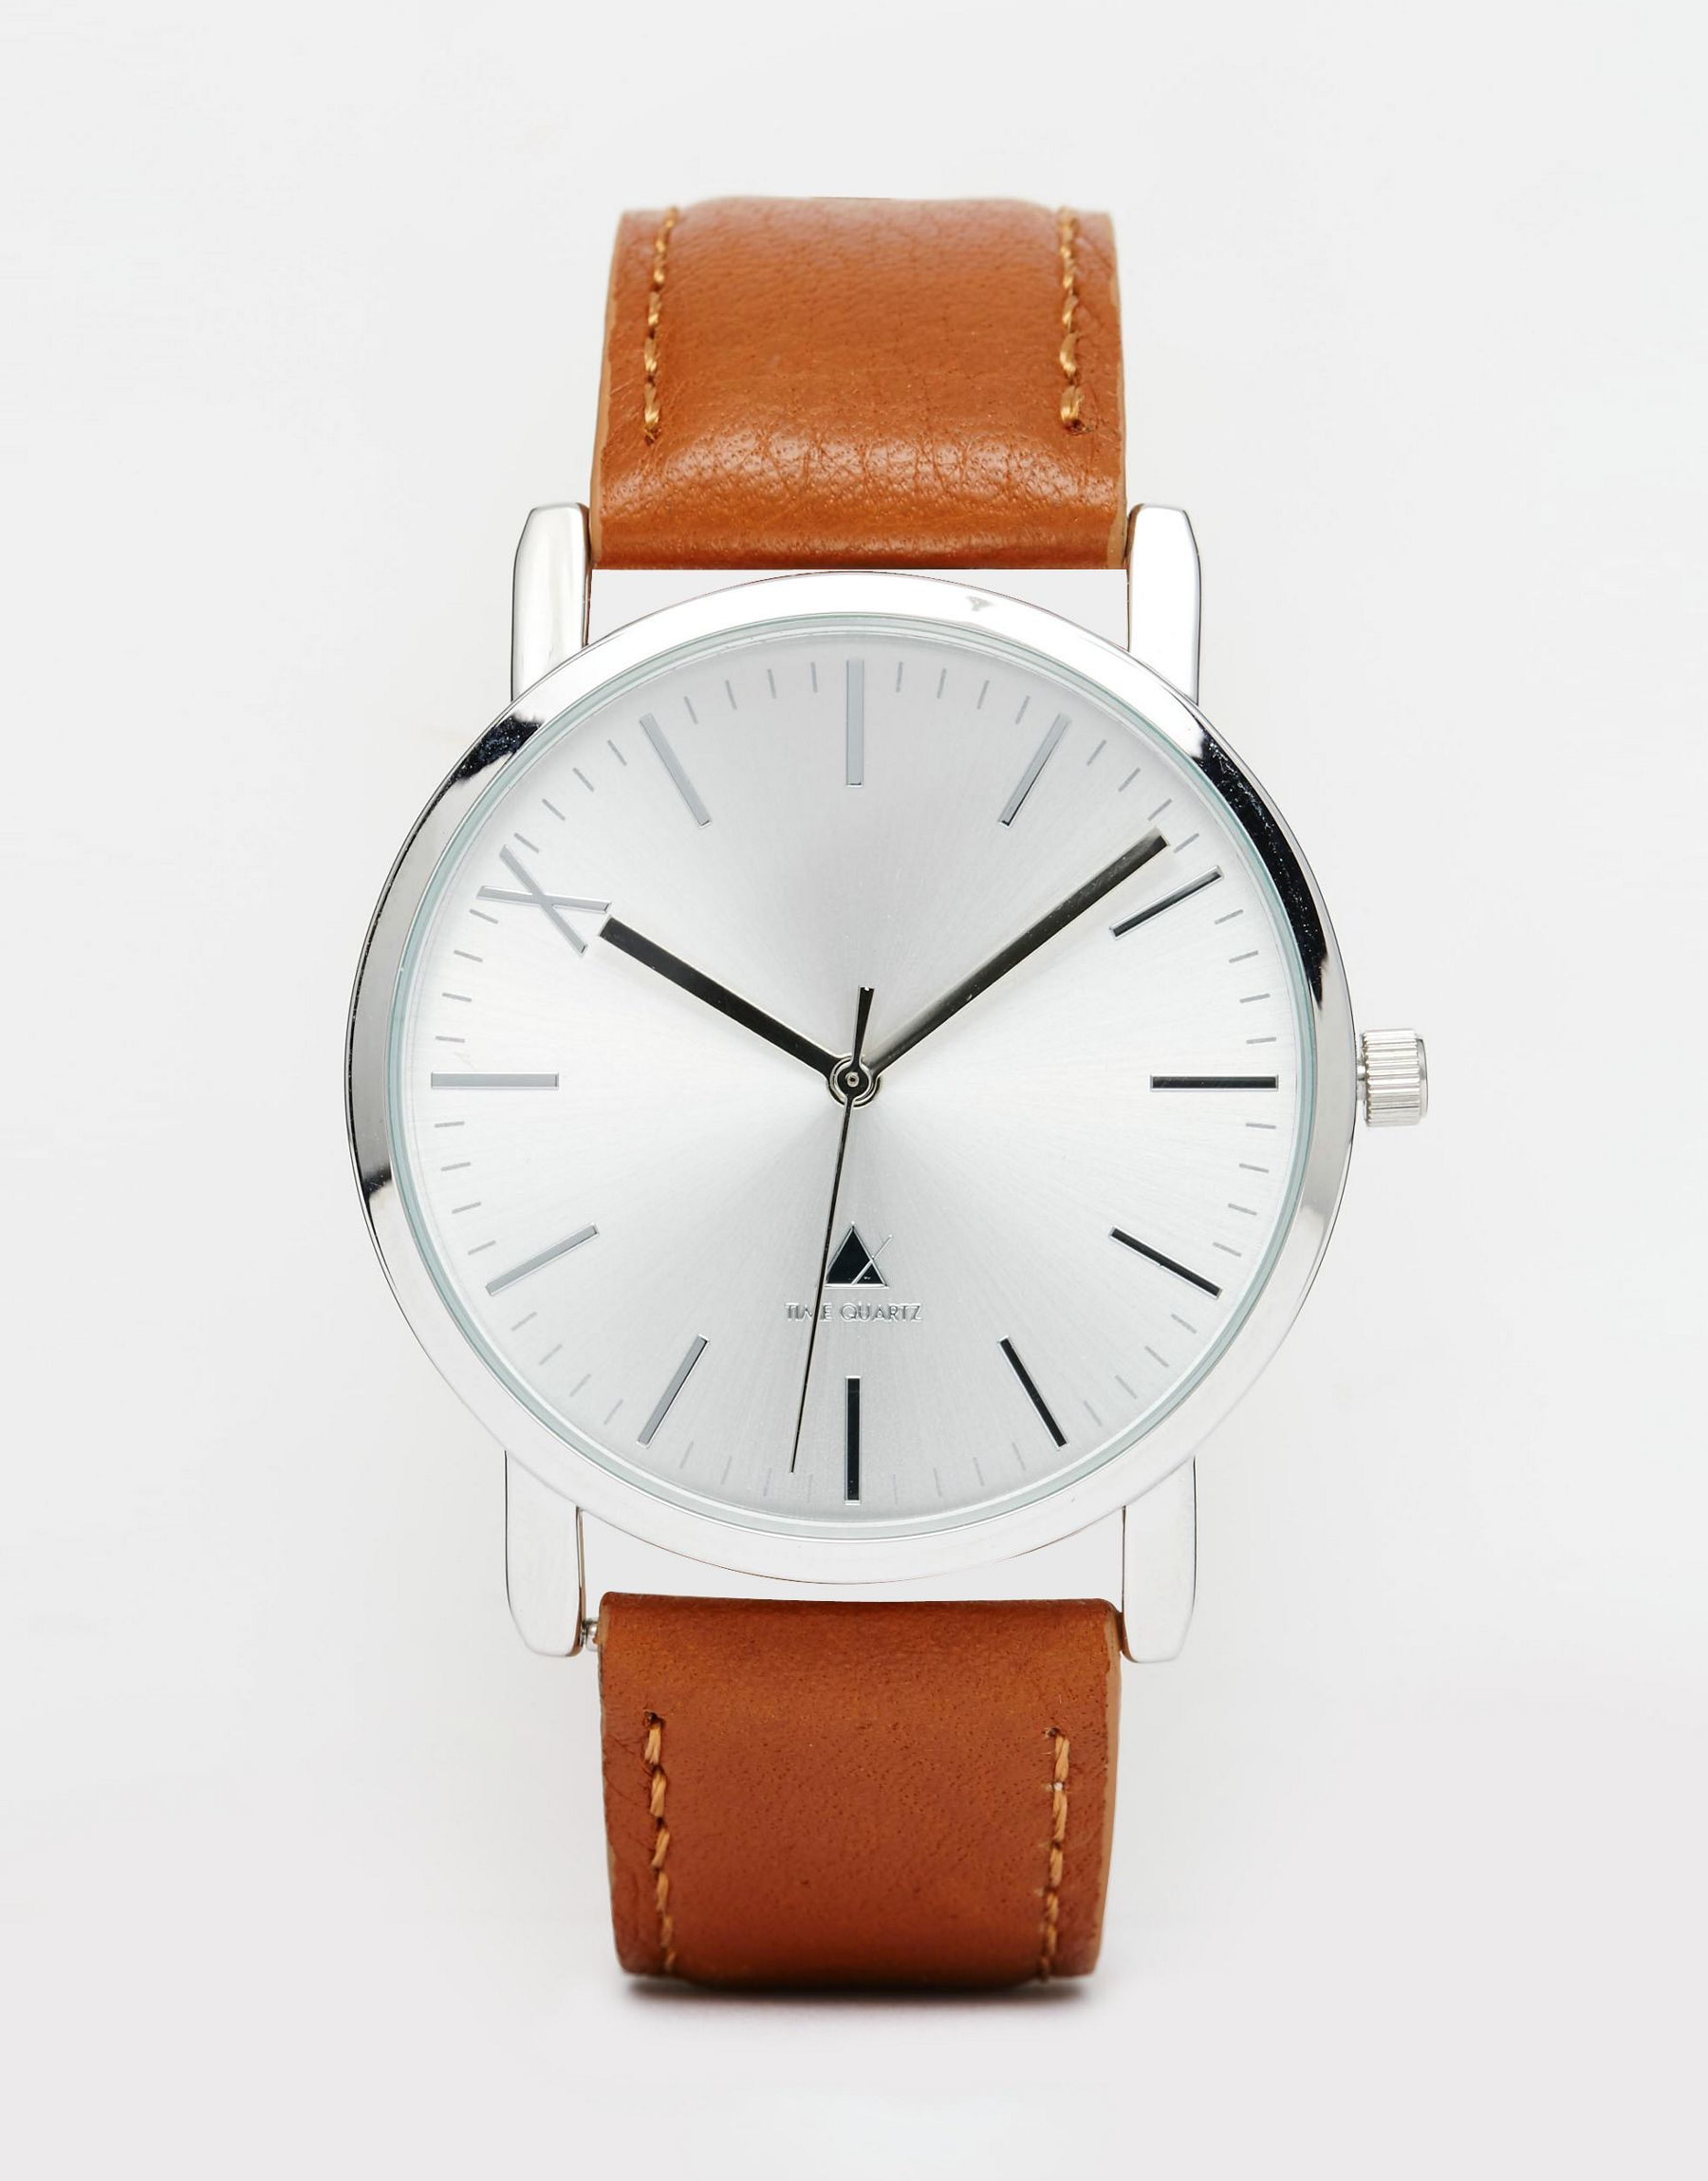 Discover our collection of watches and jewelry for men at ASOS. Accessorize your outfit with designer watches or gold and silver jewelry for men today.